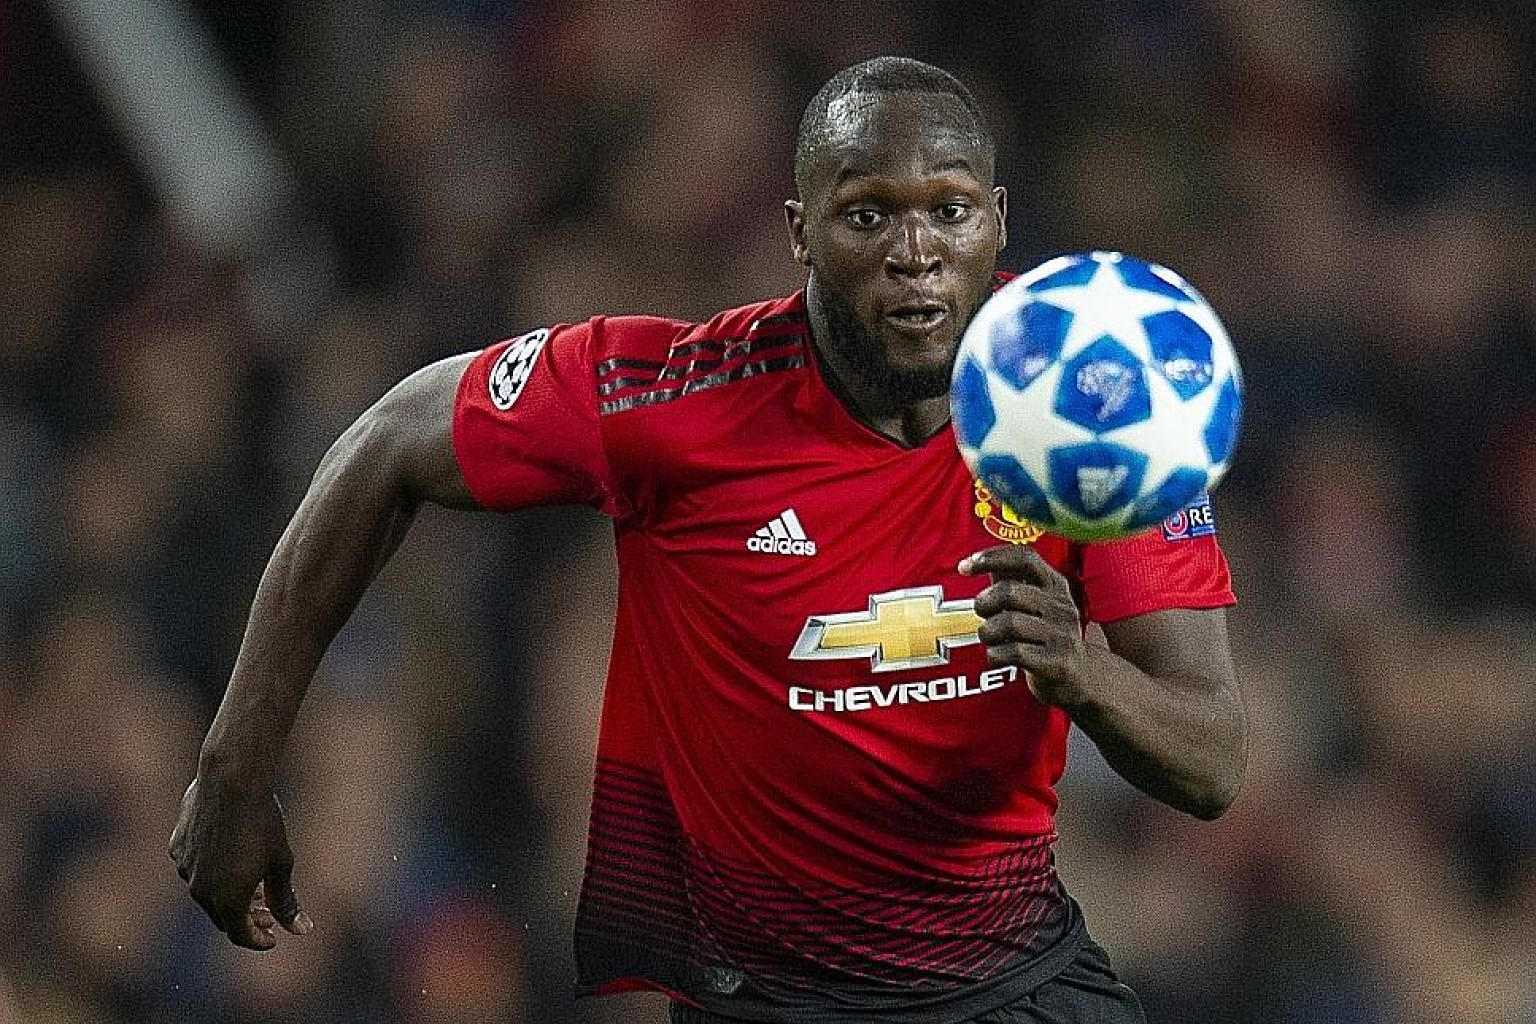 Romelu Lukaku has signed a five-year deal with Inter Milan after passing his medical examination yesterday. PHOTO: EPA-EFE